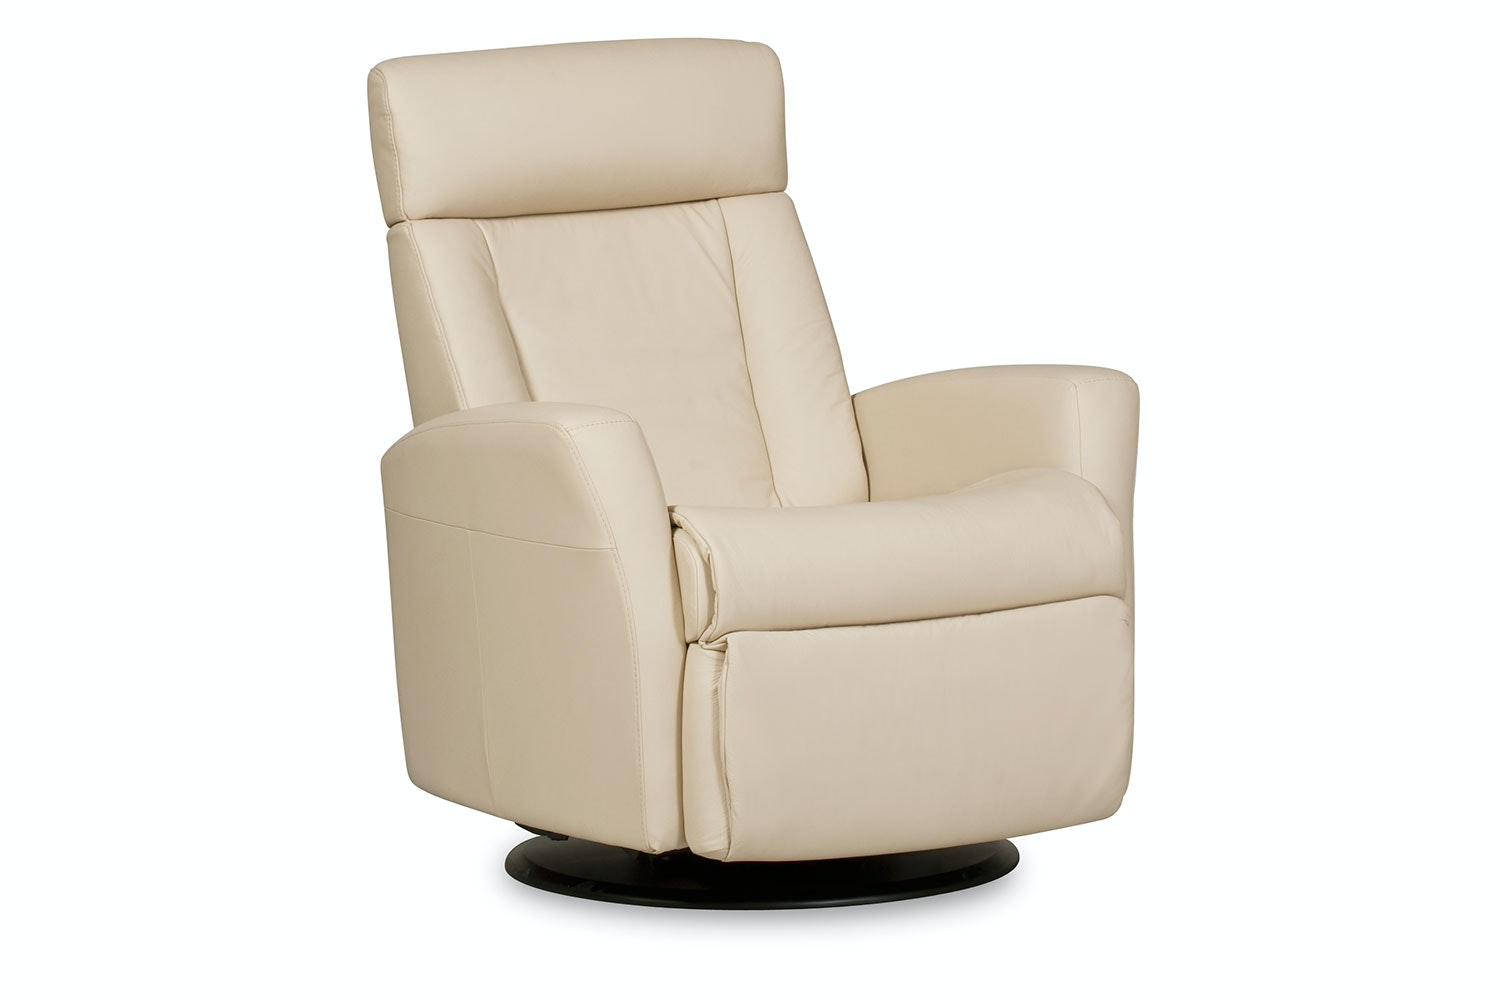 Lotus Recliner Chair Leather - Large -Trend- IMG  sc 1 st  Harvey Norman & Lotus Recliner Chair Leather - Large -Trend- IMG | Harvey Norman ... islam-shia.org